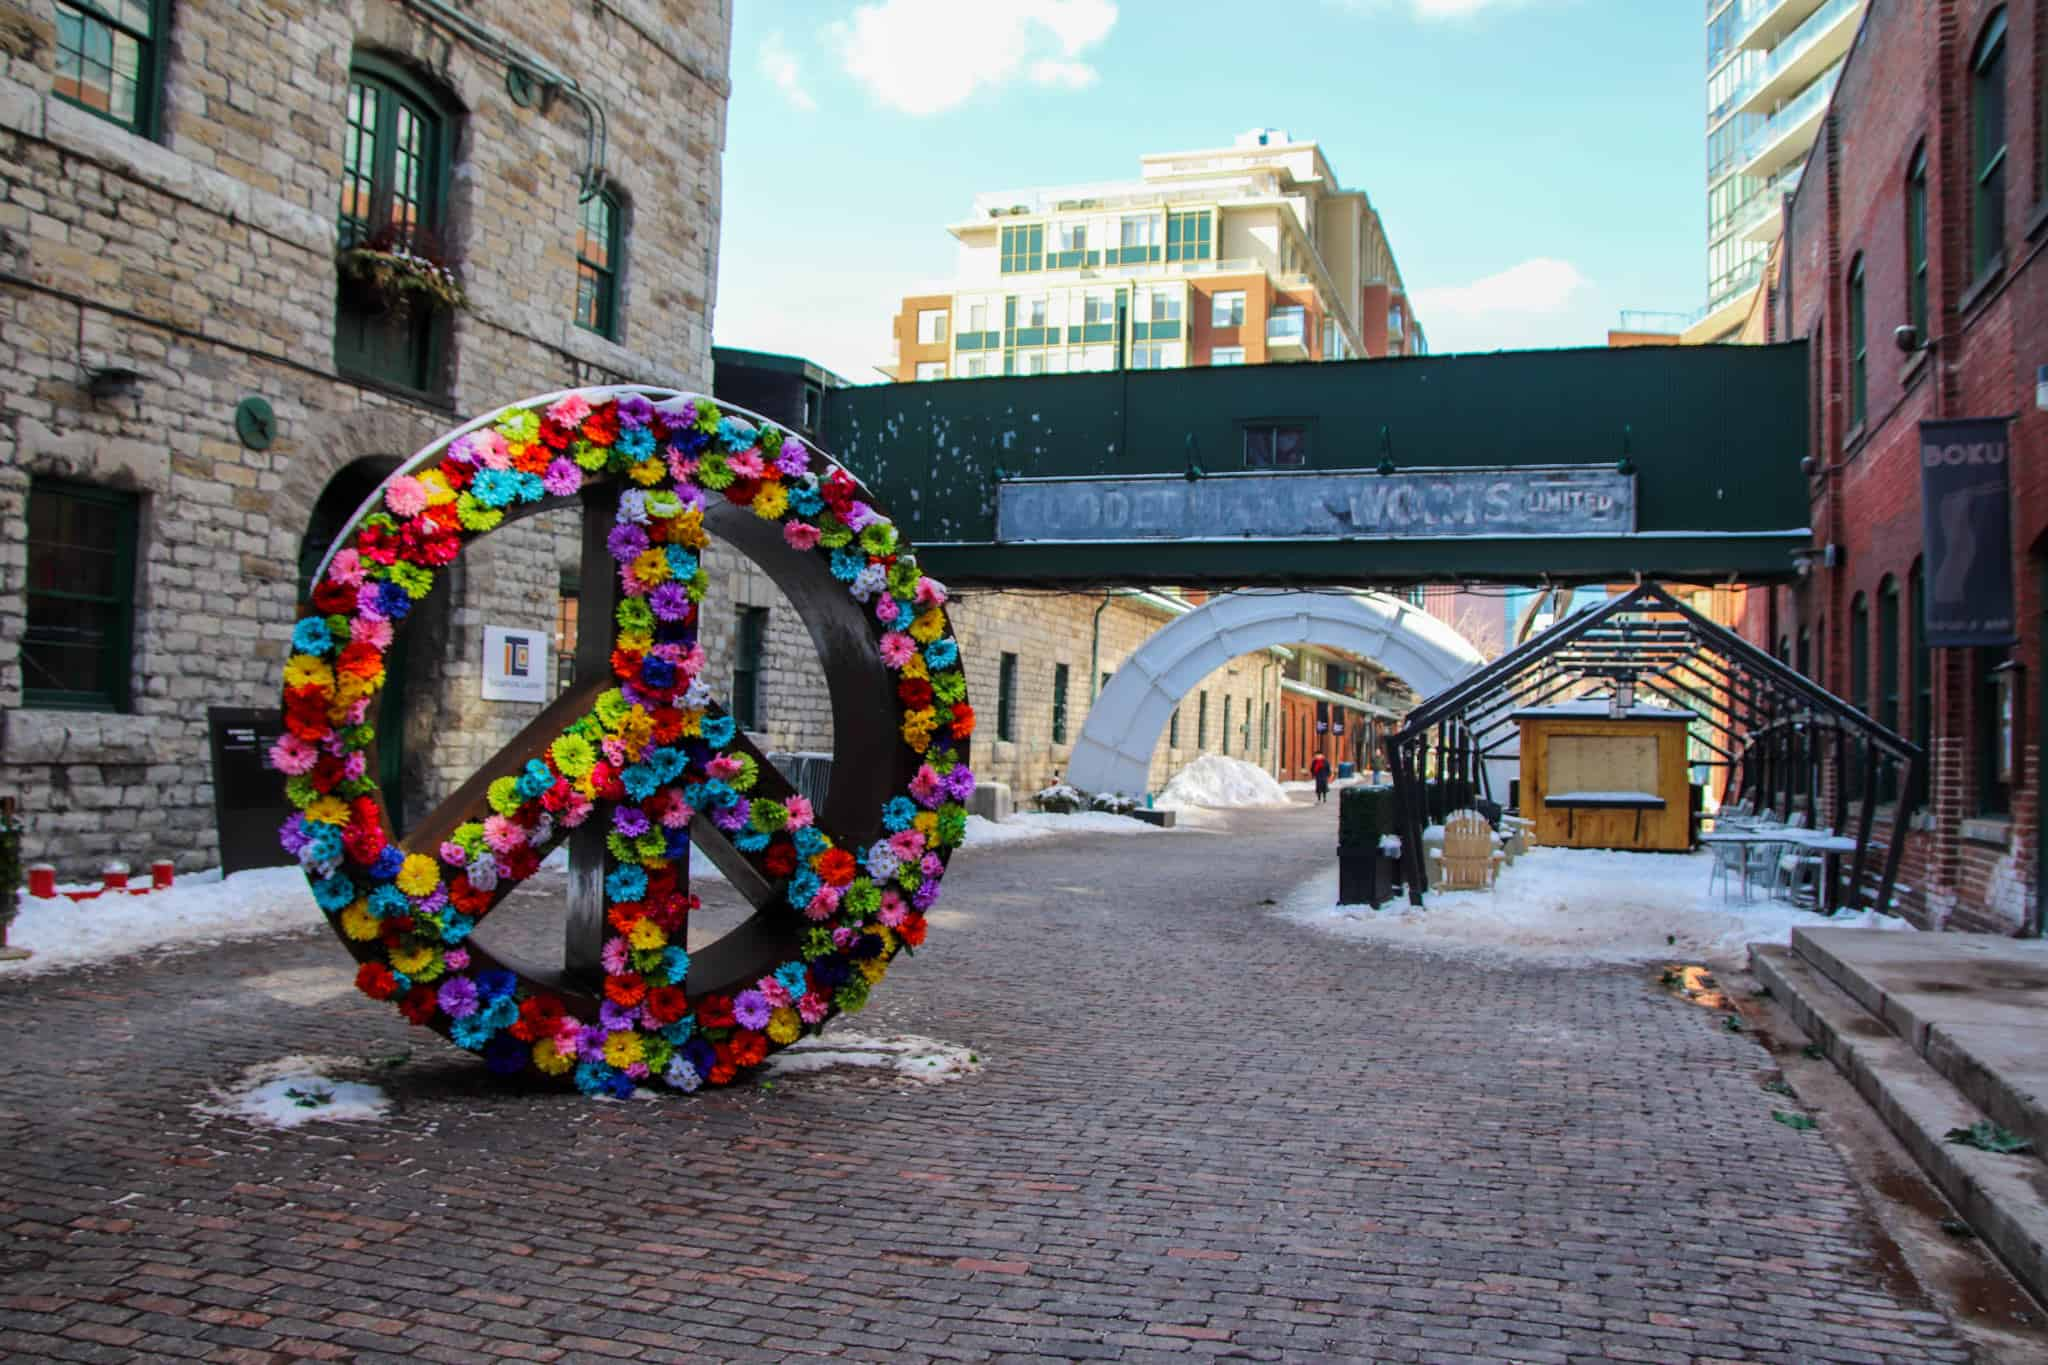 Exploring the Distillery District is one of the free things to do in Toronto